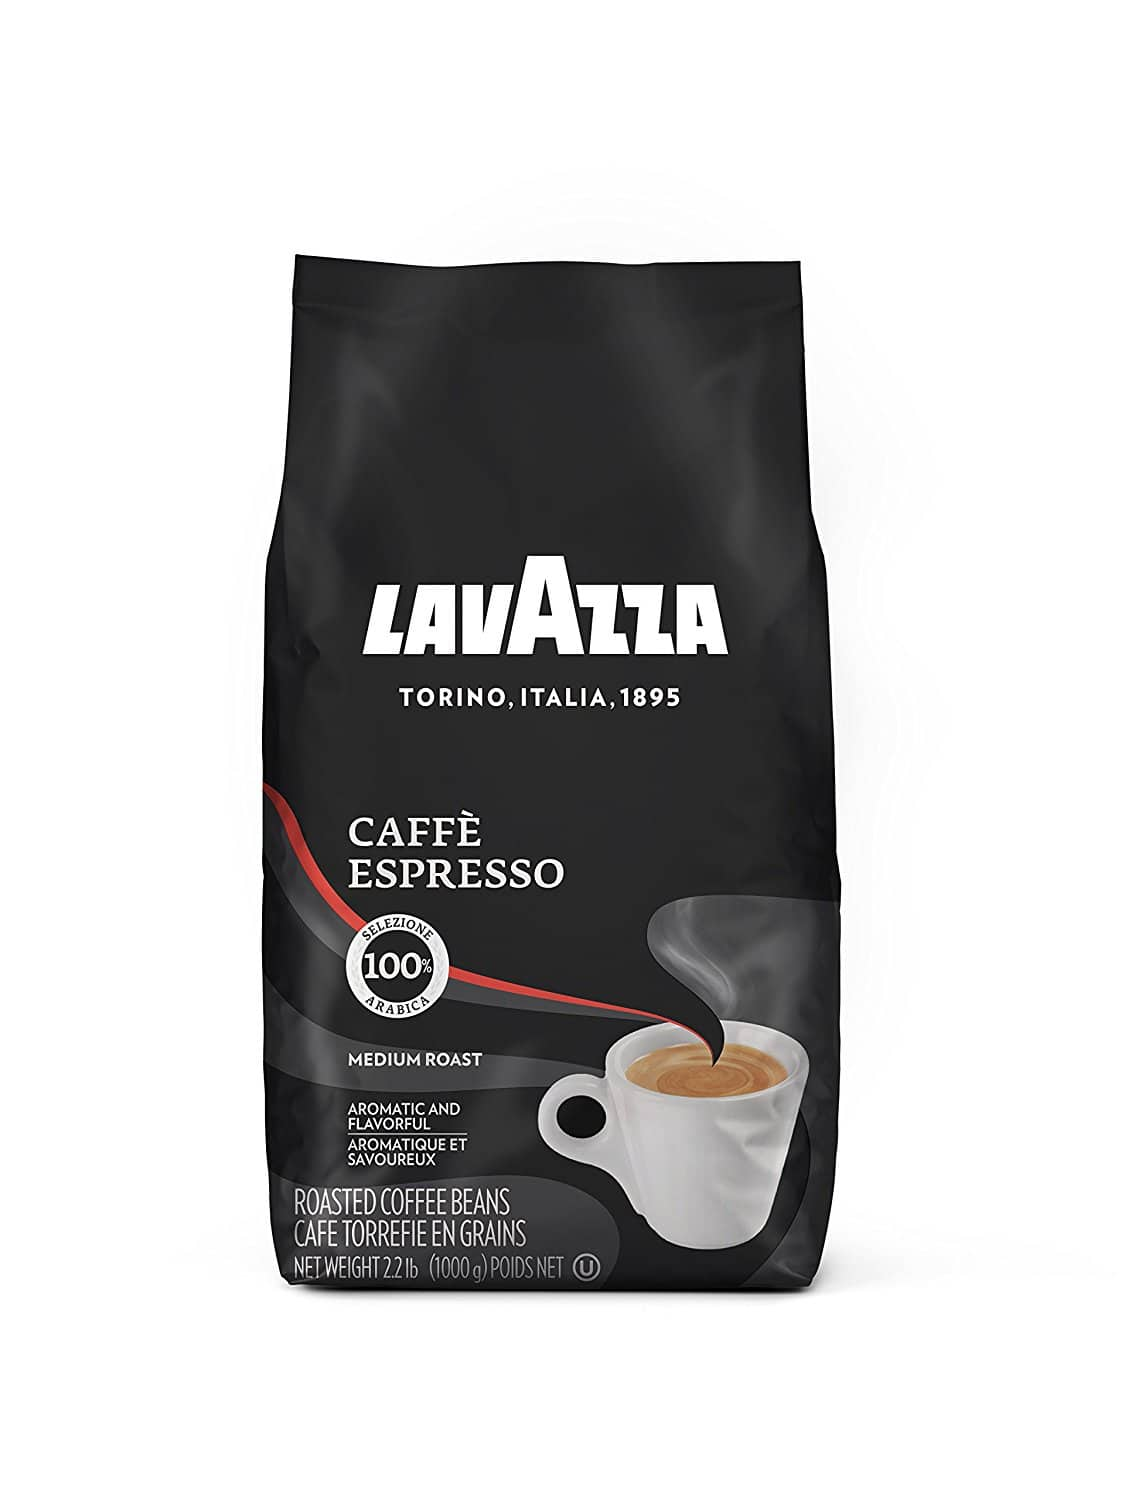 2.2-lb Lavazza Caffe Espresso Whole Bean Coffee Blend (Medium Roast) $13.20 or less w/ S&S + Free S/H